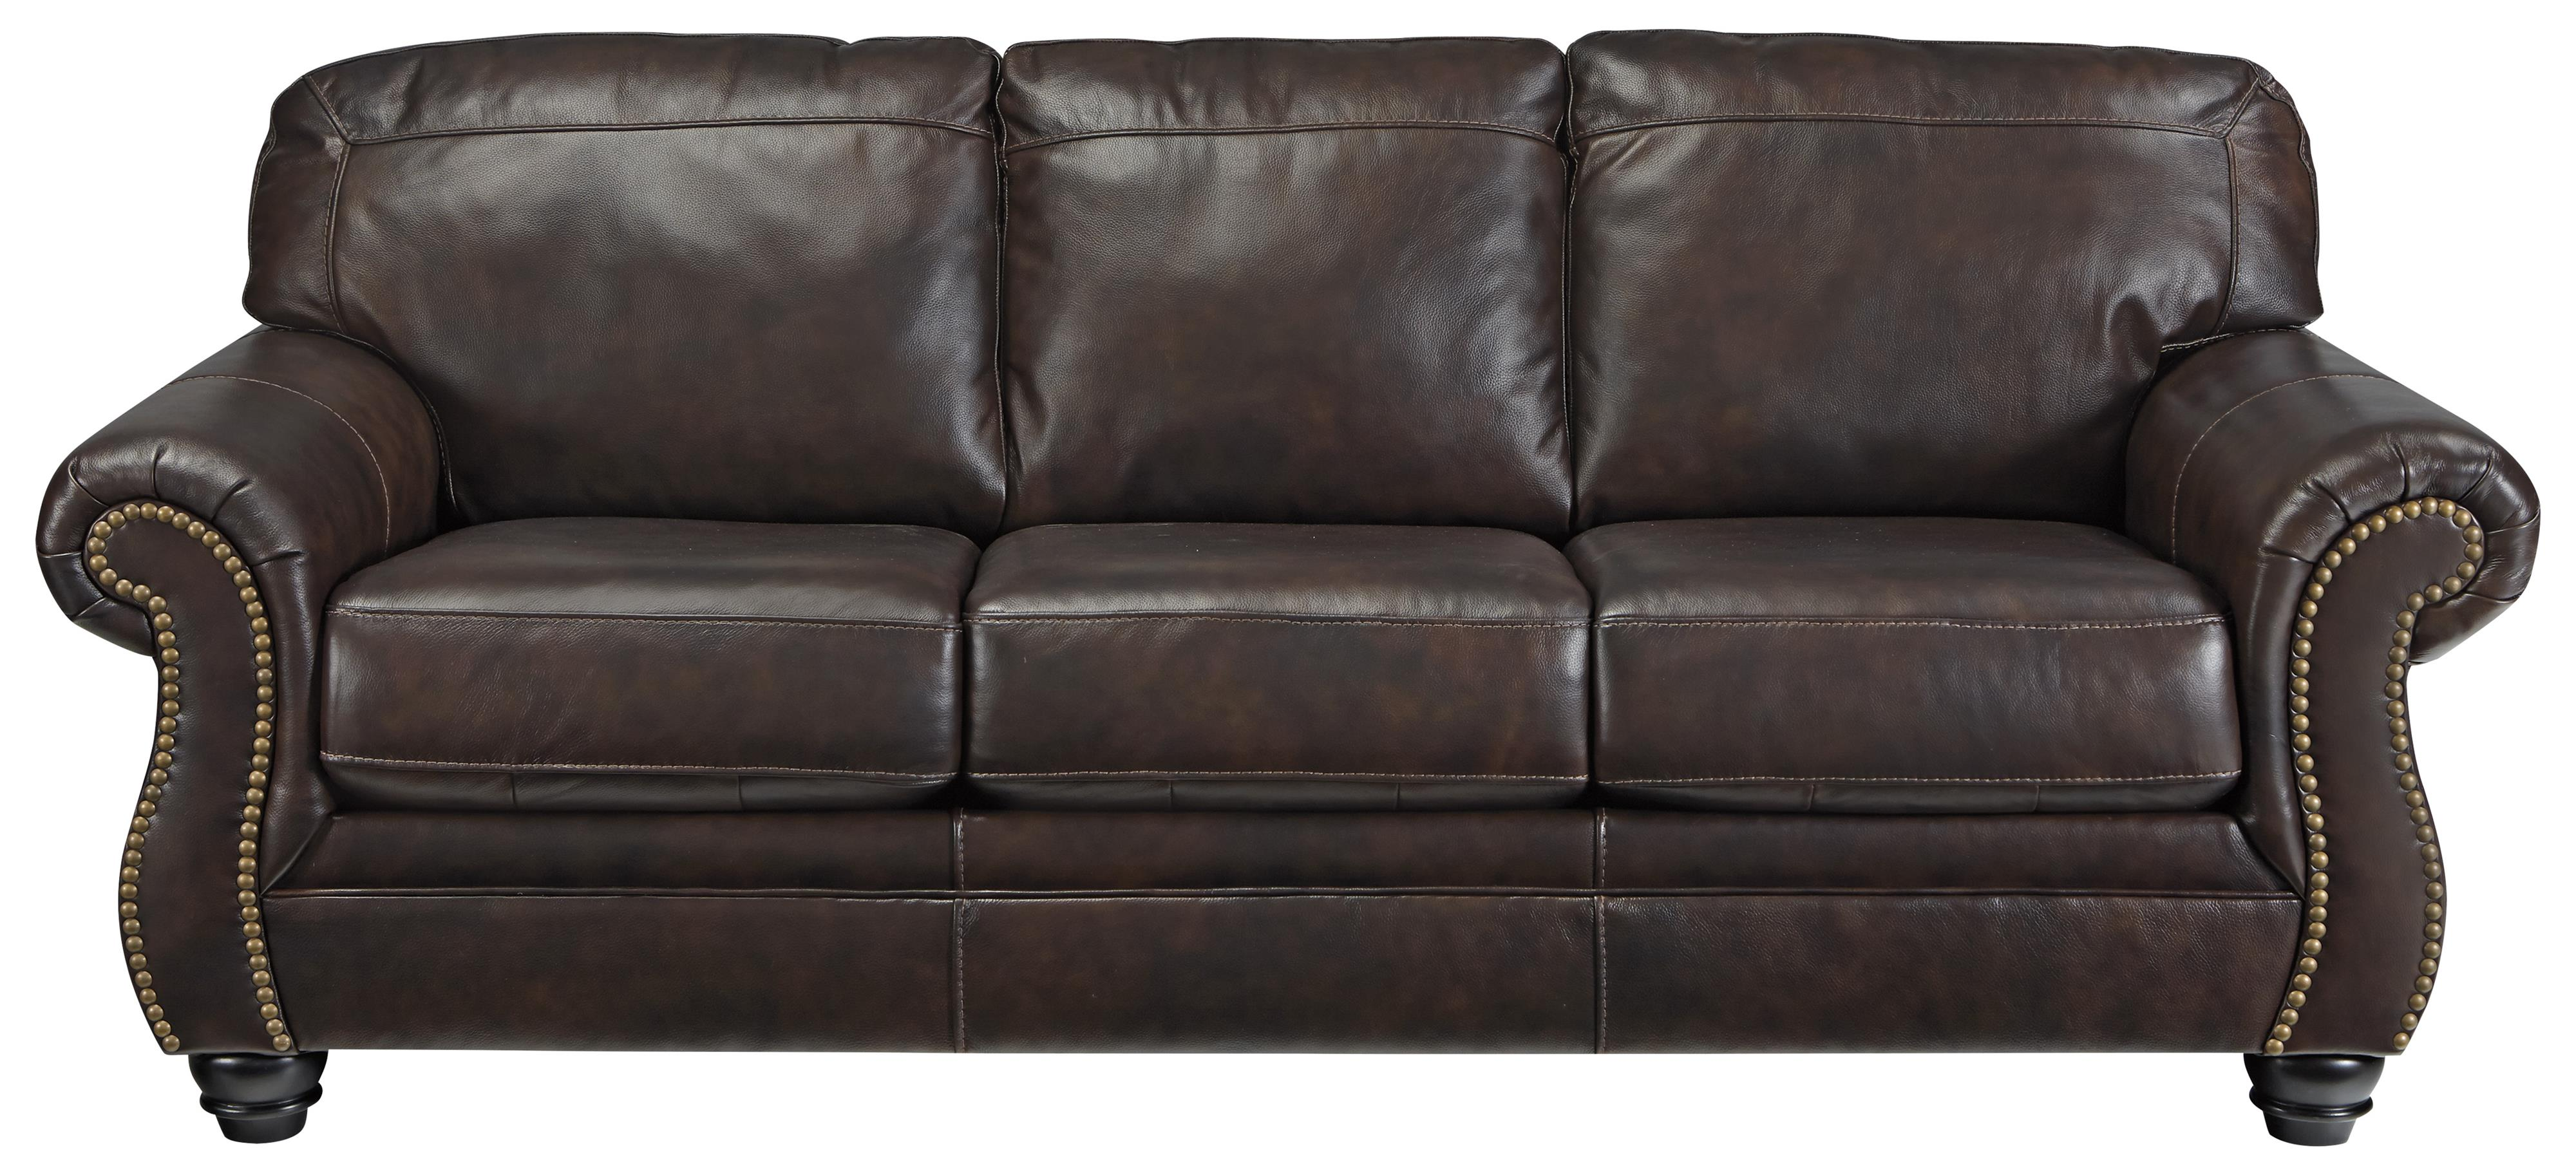 Signature Design by Ashley Bristan Sofa - Item Number: 8220238